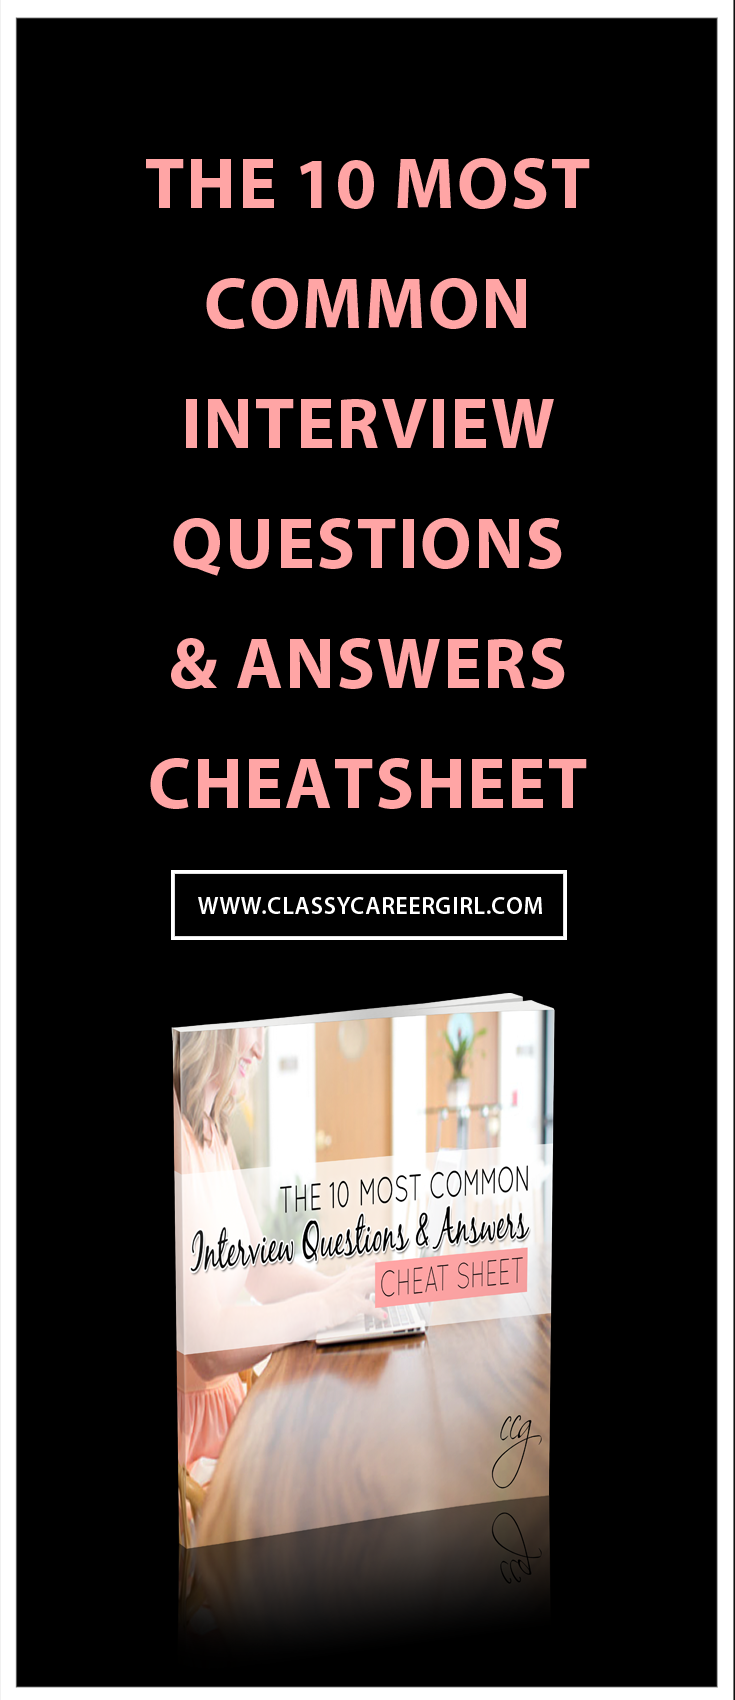 FREE CHEAT SHEET: How to answer the top 10 Interview Questions www.classycareergirl.com/interview